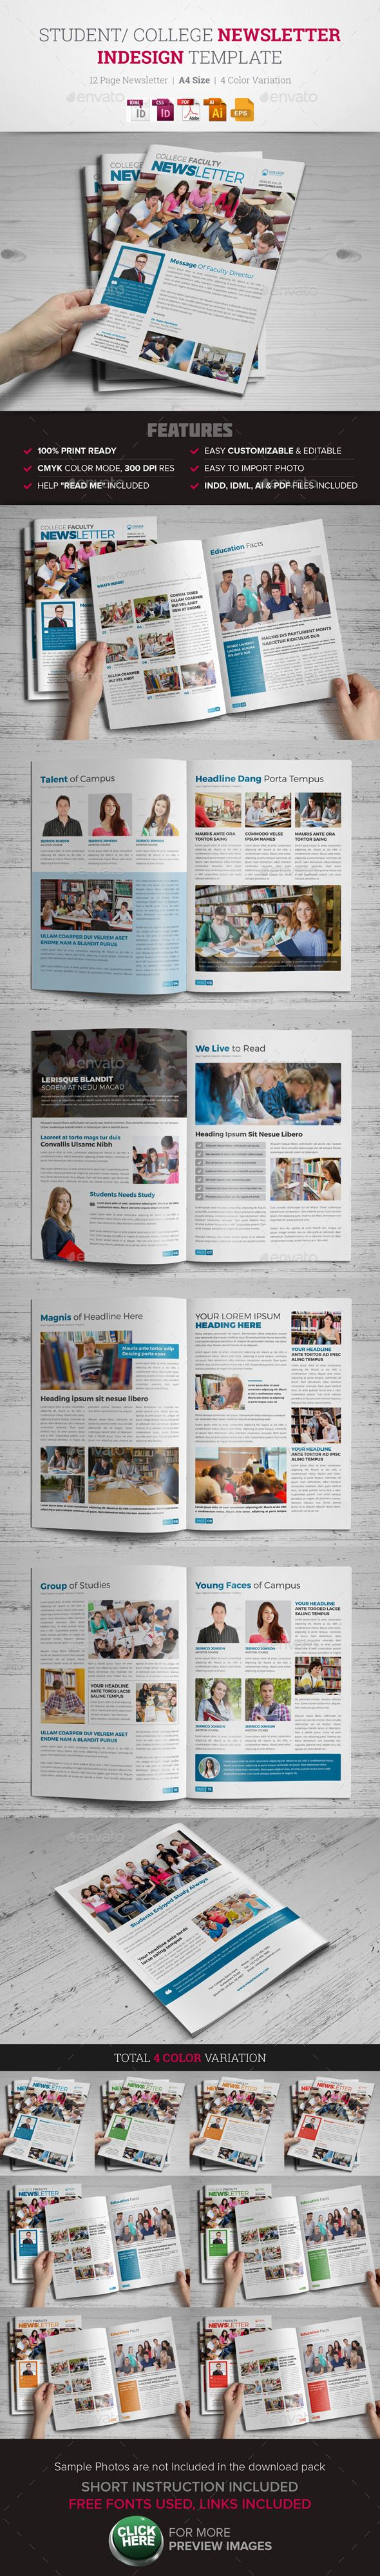 Student College Newsletter Indesign Template  - Newsletters Print Templates Download here : https://graphicriver.net/item/student-college-newsletter-indesign-template-/12087210?s_rank=159&ref=Al-fatih